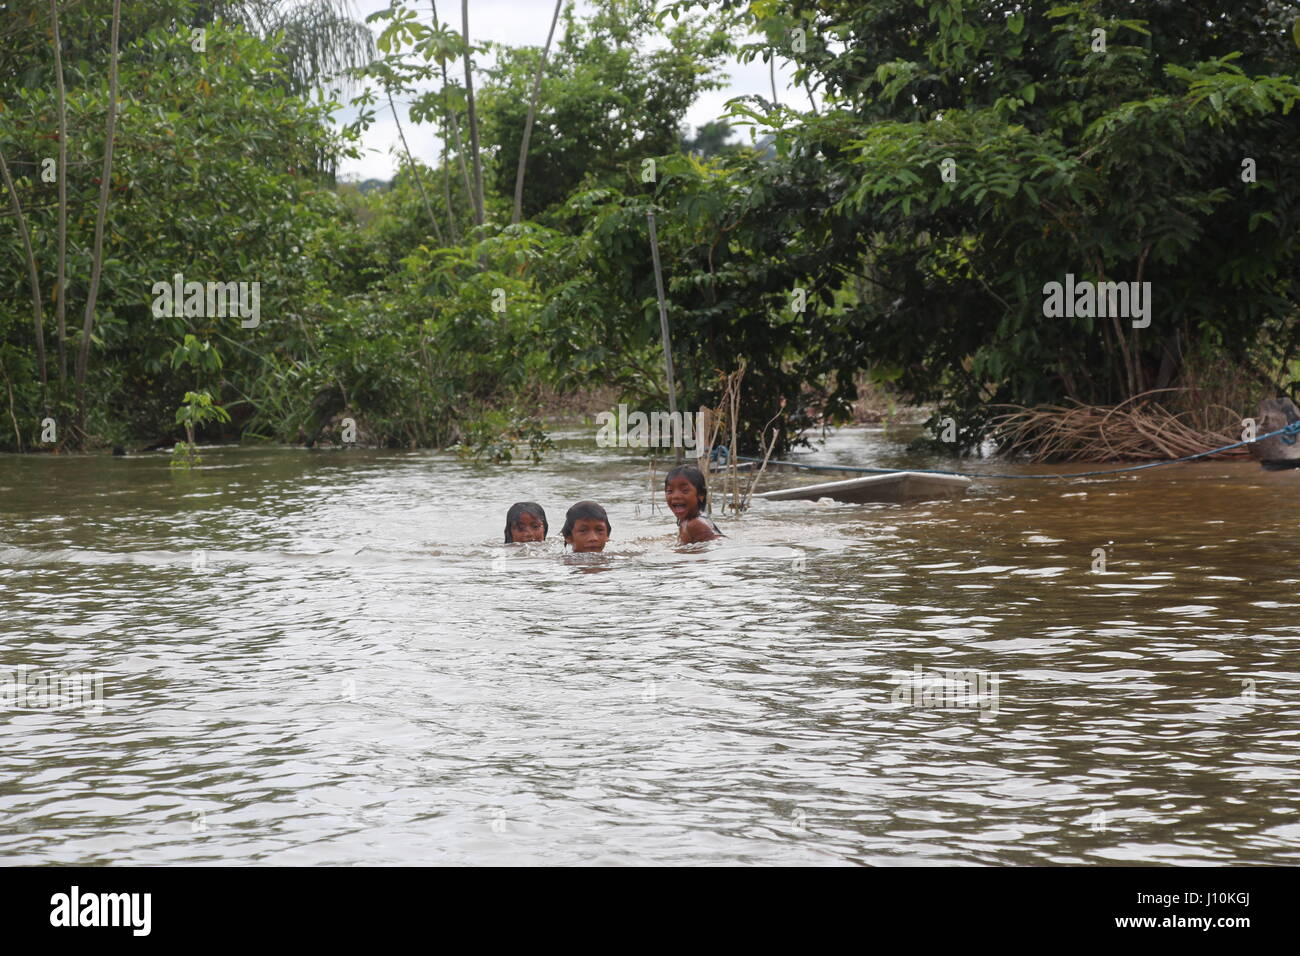 Local children take a swim in Juruena National Park in Brazil, 23 March 2017. The Amazonian park is one of the world's - Stock Image